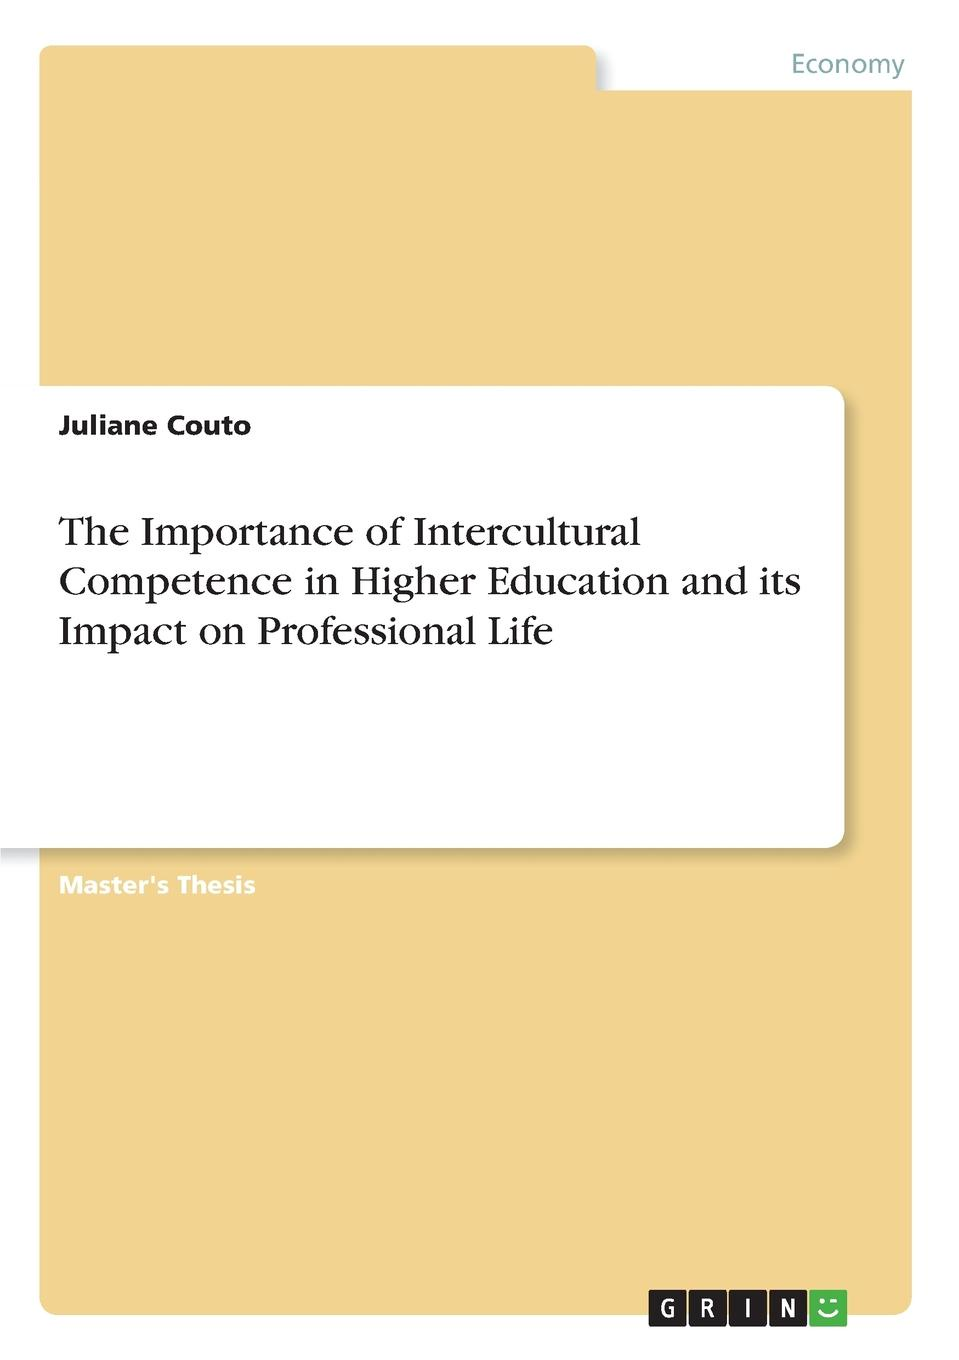 купить Juliane Couto The Importance of Intercultural Competence in Higher Education and its Impact on Professional Life по цене 5877 рублей